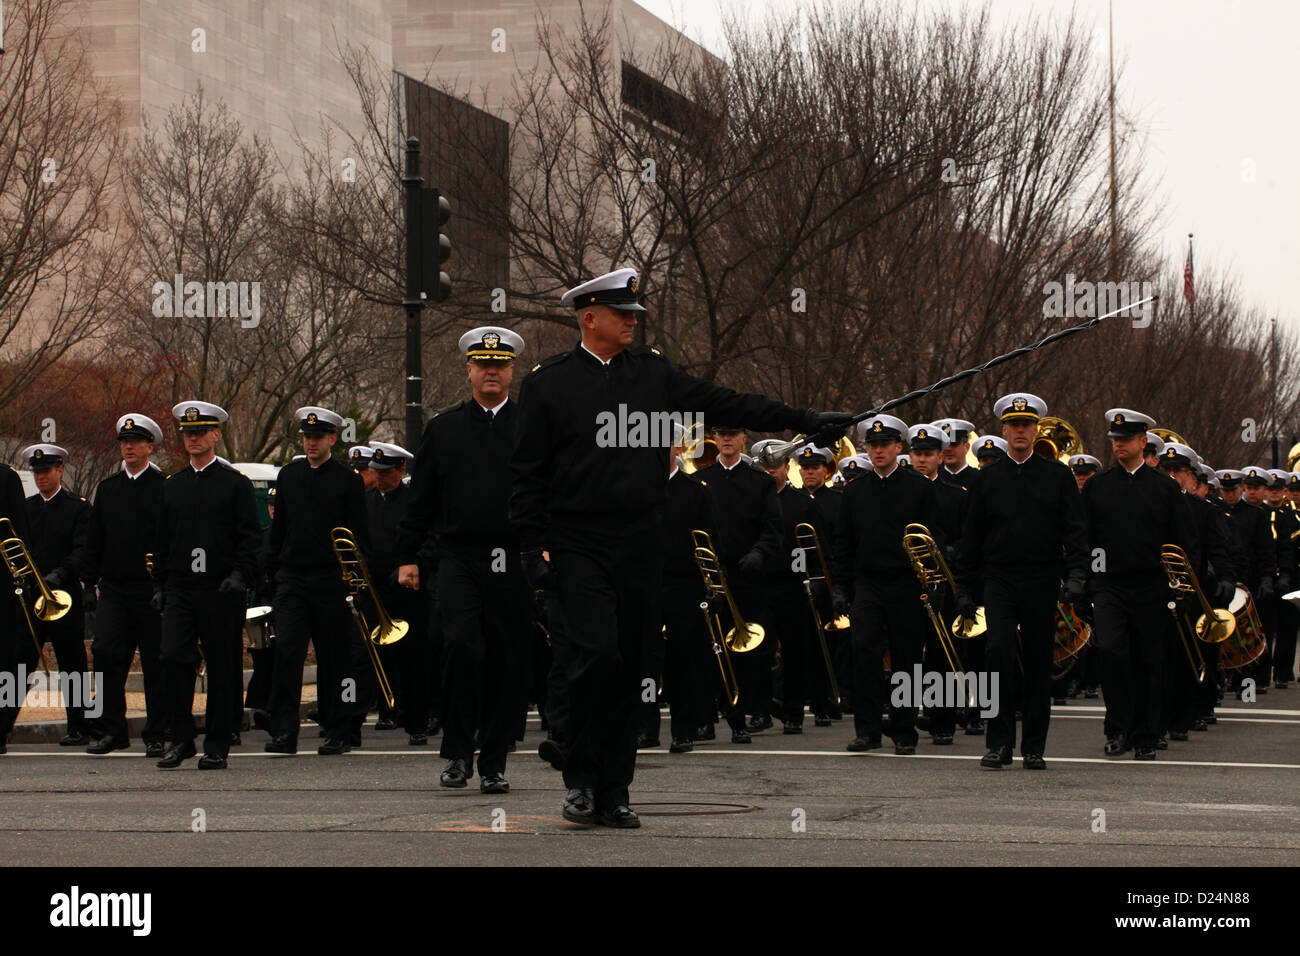 Members of the U.S. Navy Band rehearse movement through the merge area leading to the start point during the dress Stock Photo